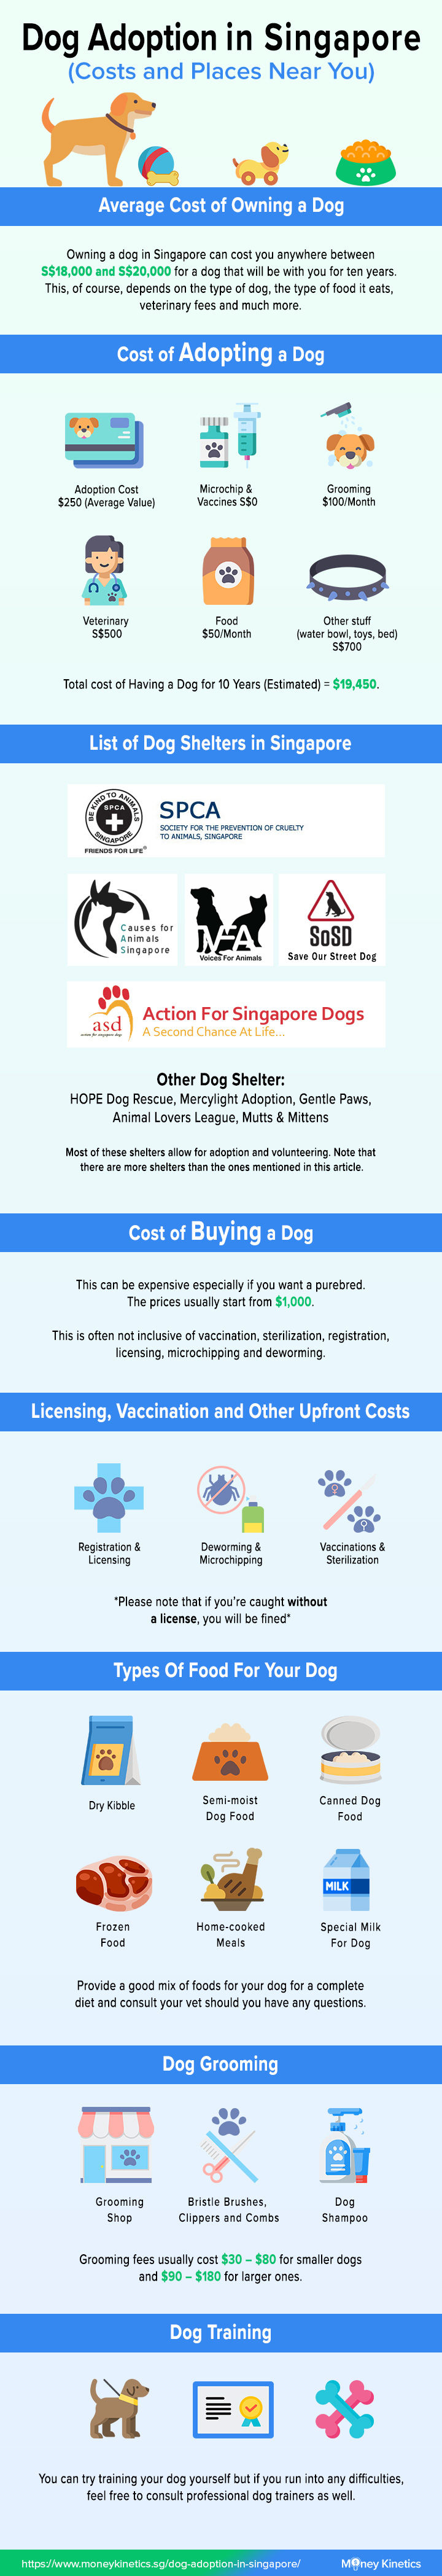 Dog Adoption in Singapore Costs and Places Near You Money Kinetics